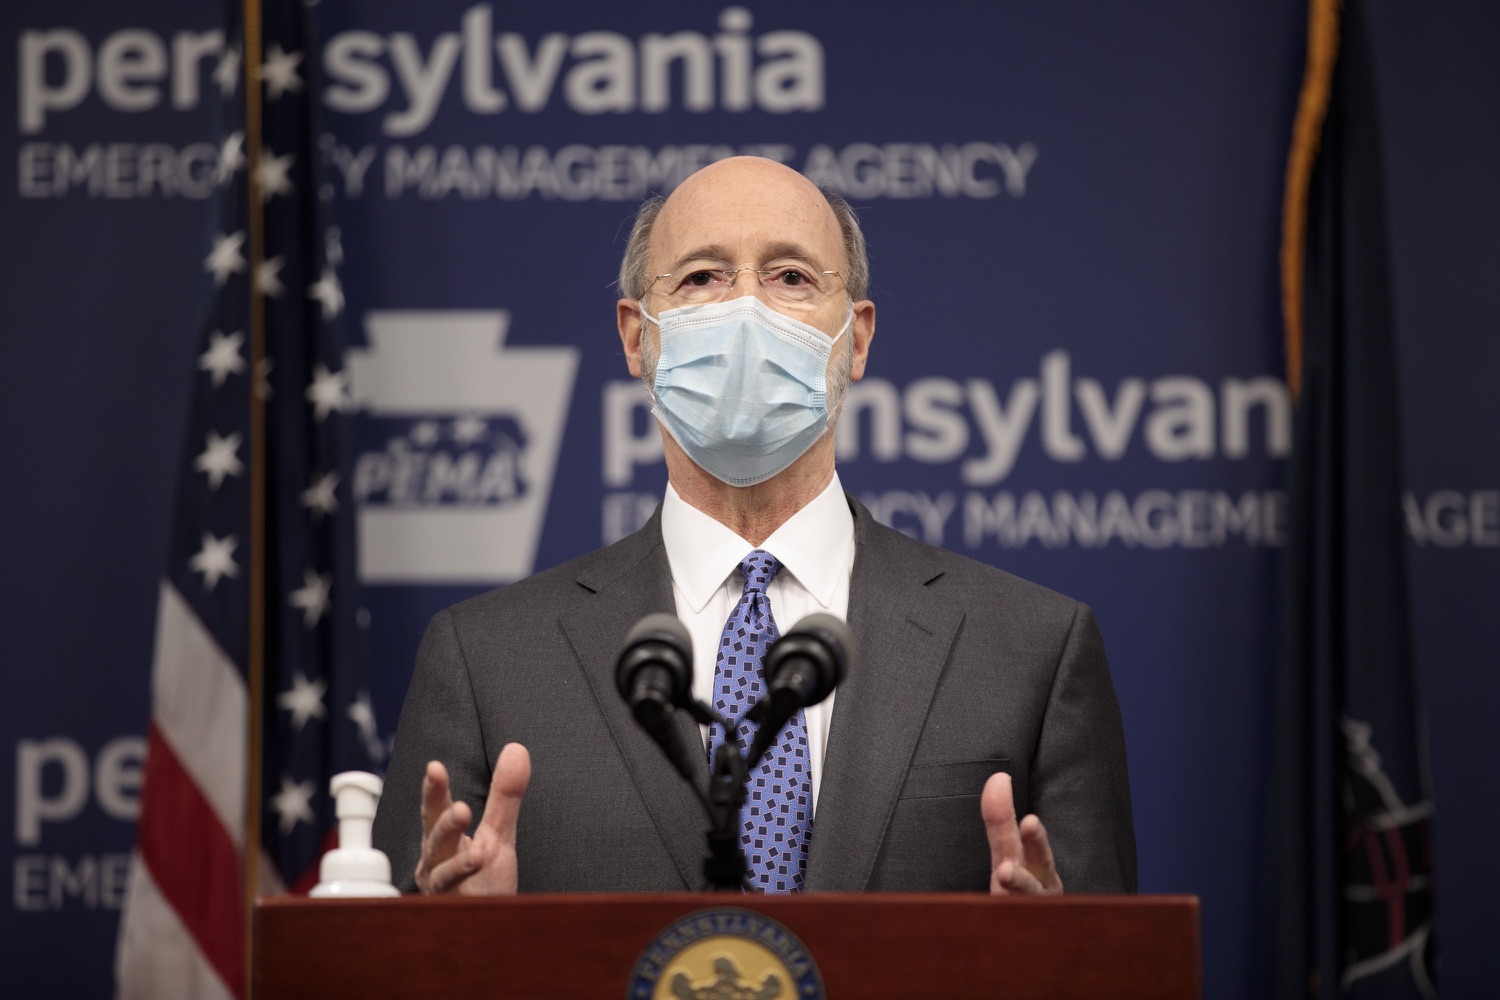 "<a href=""https://filesource.wostreaming.net/commonwealthofpa/photo/18472_gov_vaccine_dz_20.jpg"" target=""_blank"">⇣ Download Photo<br></a>Pennsylvania Governor Tom Wolf speaks at the press conference.  The commonwealths COVID-19 vaccination distribution plan was designed to be fluid and flexible to meet guidance and recommendations from the federal government. Today, Governor Tom Wolf and Secretary of Health Dr. Rachel Levine announced the fourth version of the plan, detailing the updates and how the state is working to ensure safe, swift implementation. Harrisburg, PA  January 8, 2021"